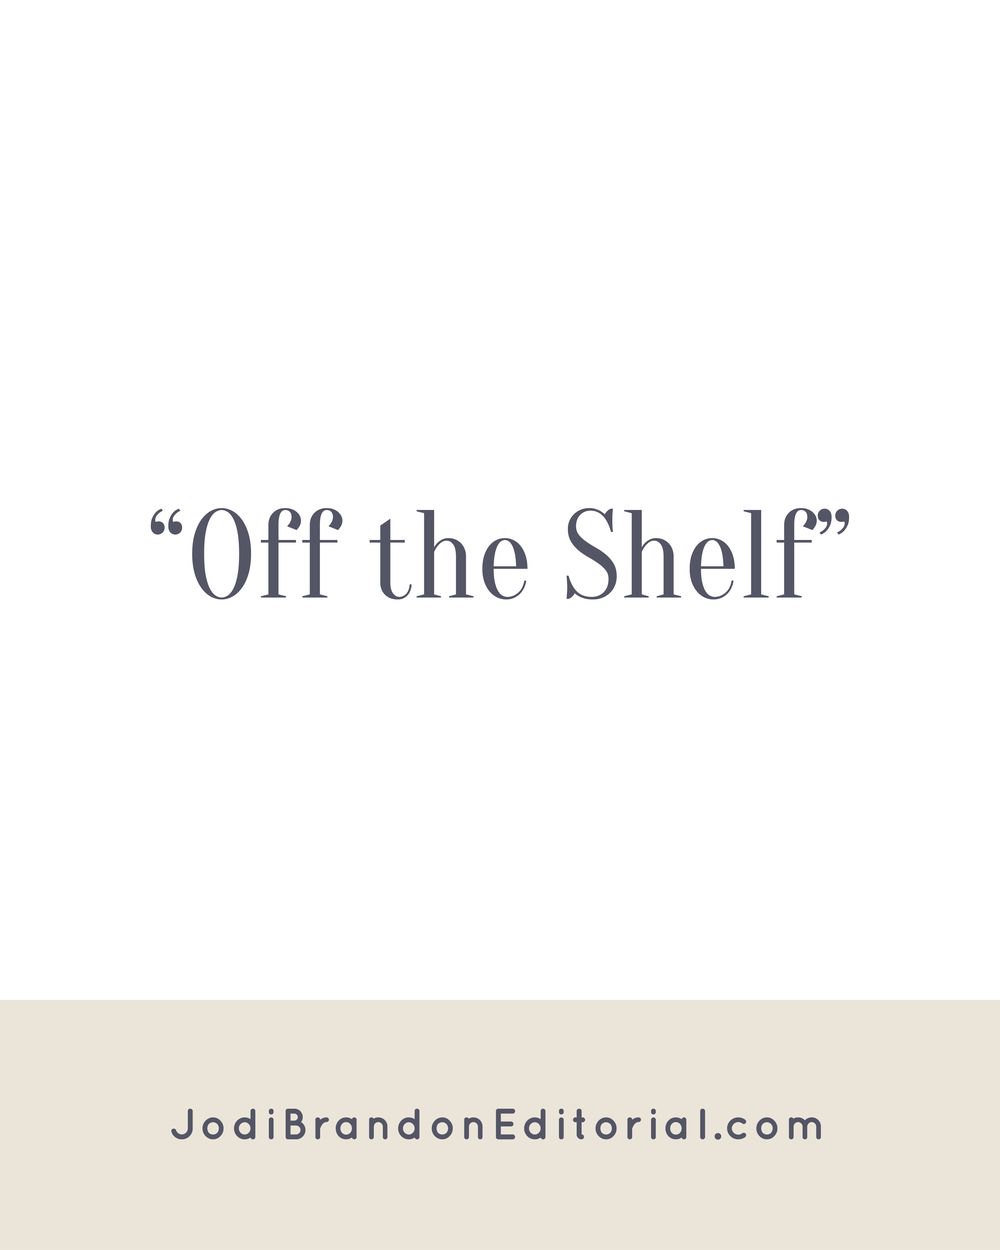 Welcome back to Off the Shelf, friends! We're trying something a bit different with Off the Shelf in 2017. Instead of me posting reviews each month, an entrepreneur friend and I will be trading reviews of the same book. This month features a review from my editorial colleague Liz Thompson of House Style Editing. Take it away, Liz!  The Happiness Equation By Neil Pasricha  |  Jodi Brandon Editorial